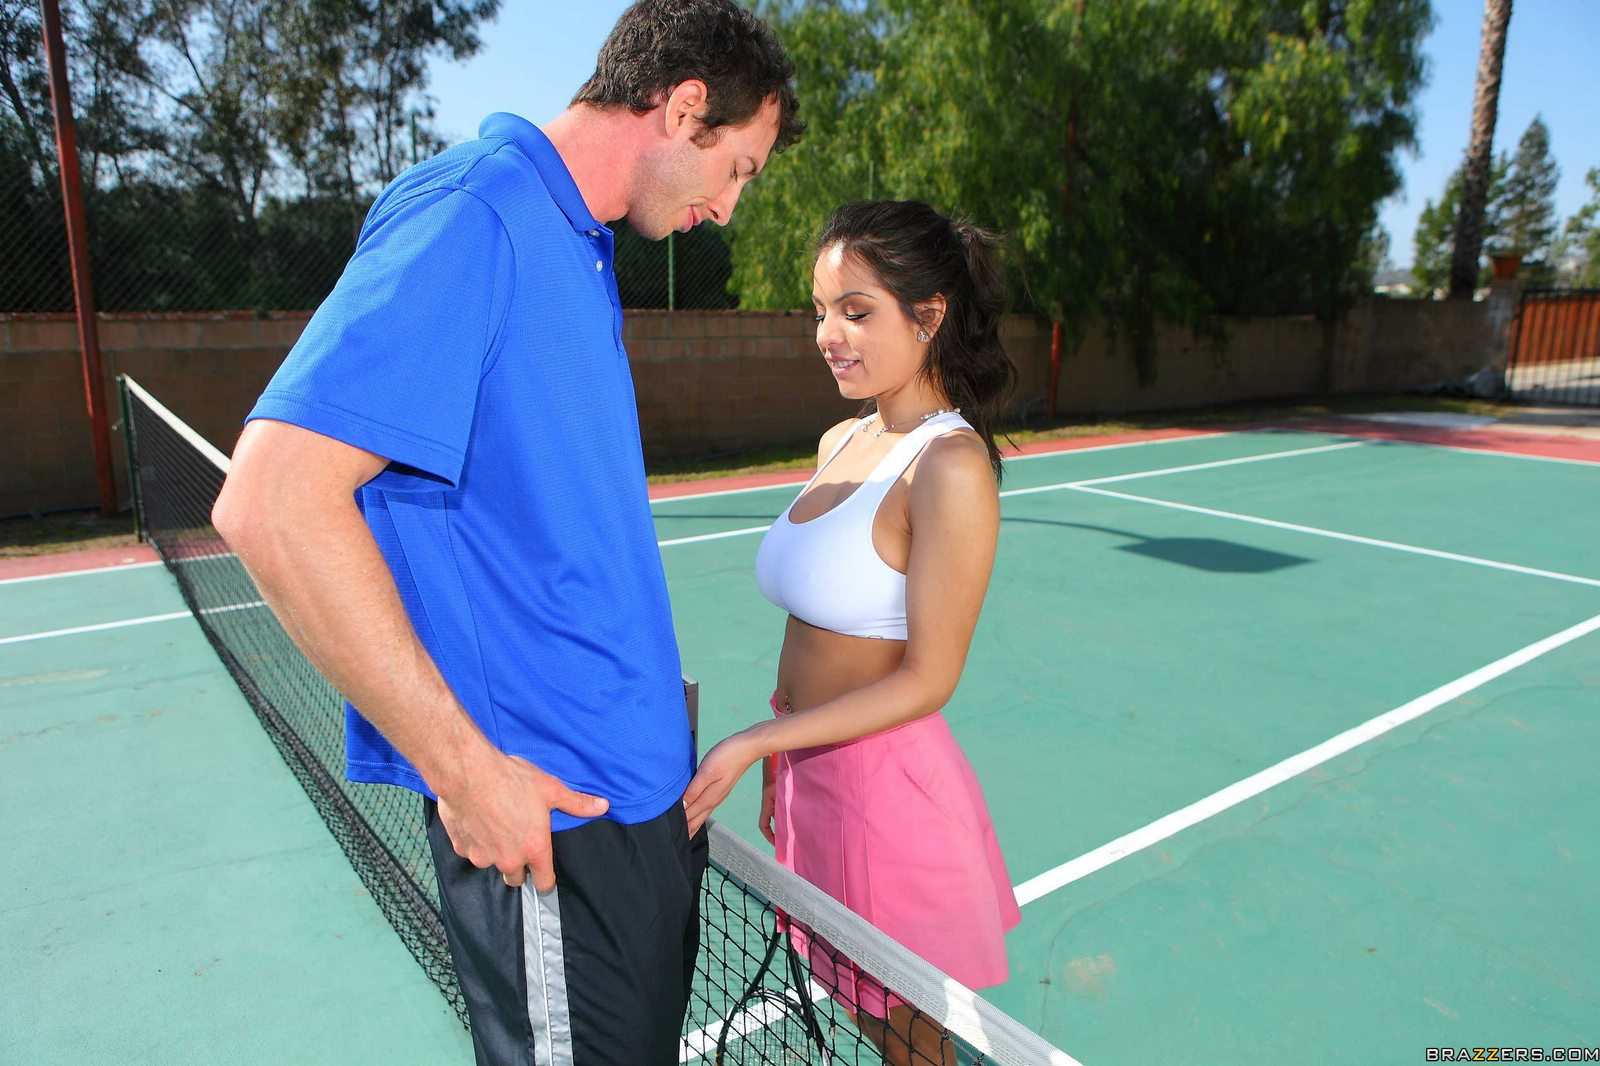 Having sex with tennis player